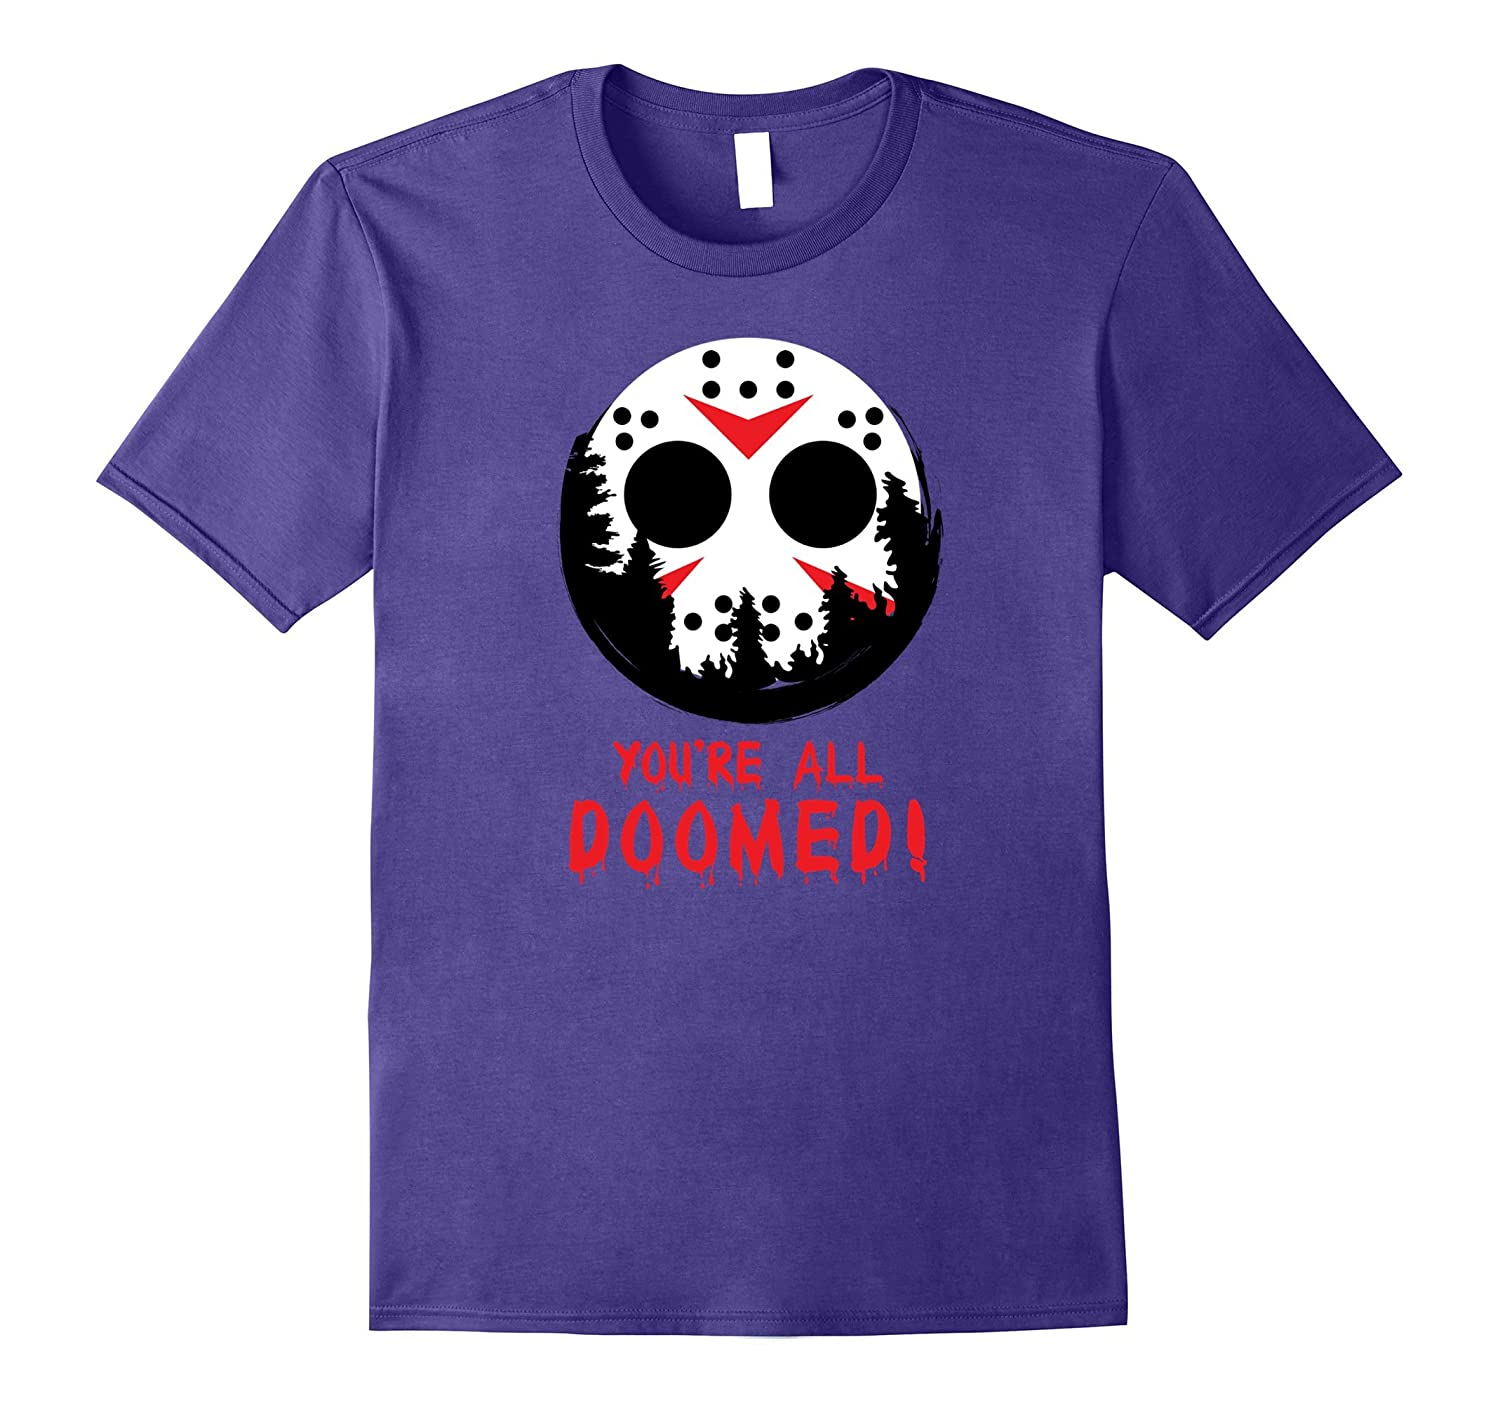 You're All Doomed T Shirt - Halloween Horror Shirt-FL